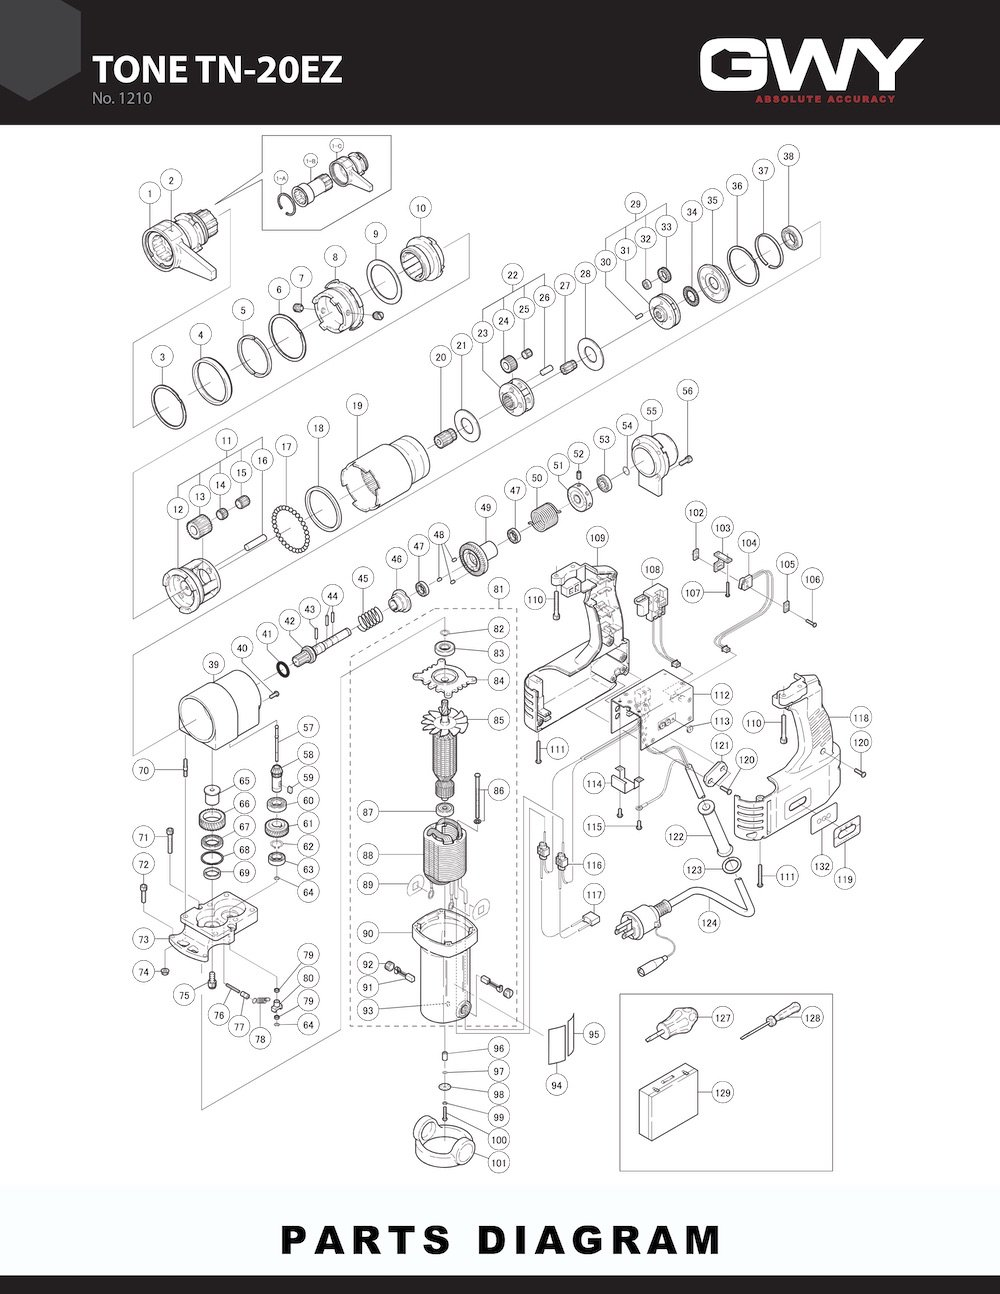 Borg Warner Overdrive Wiring Diagram Auto Electrical Ford Aode Transmission Th400